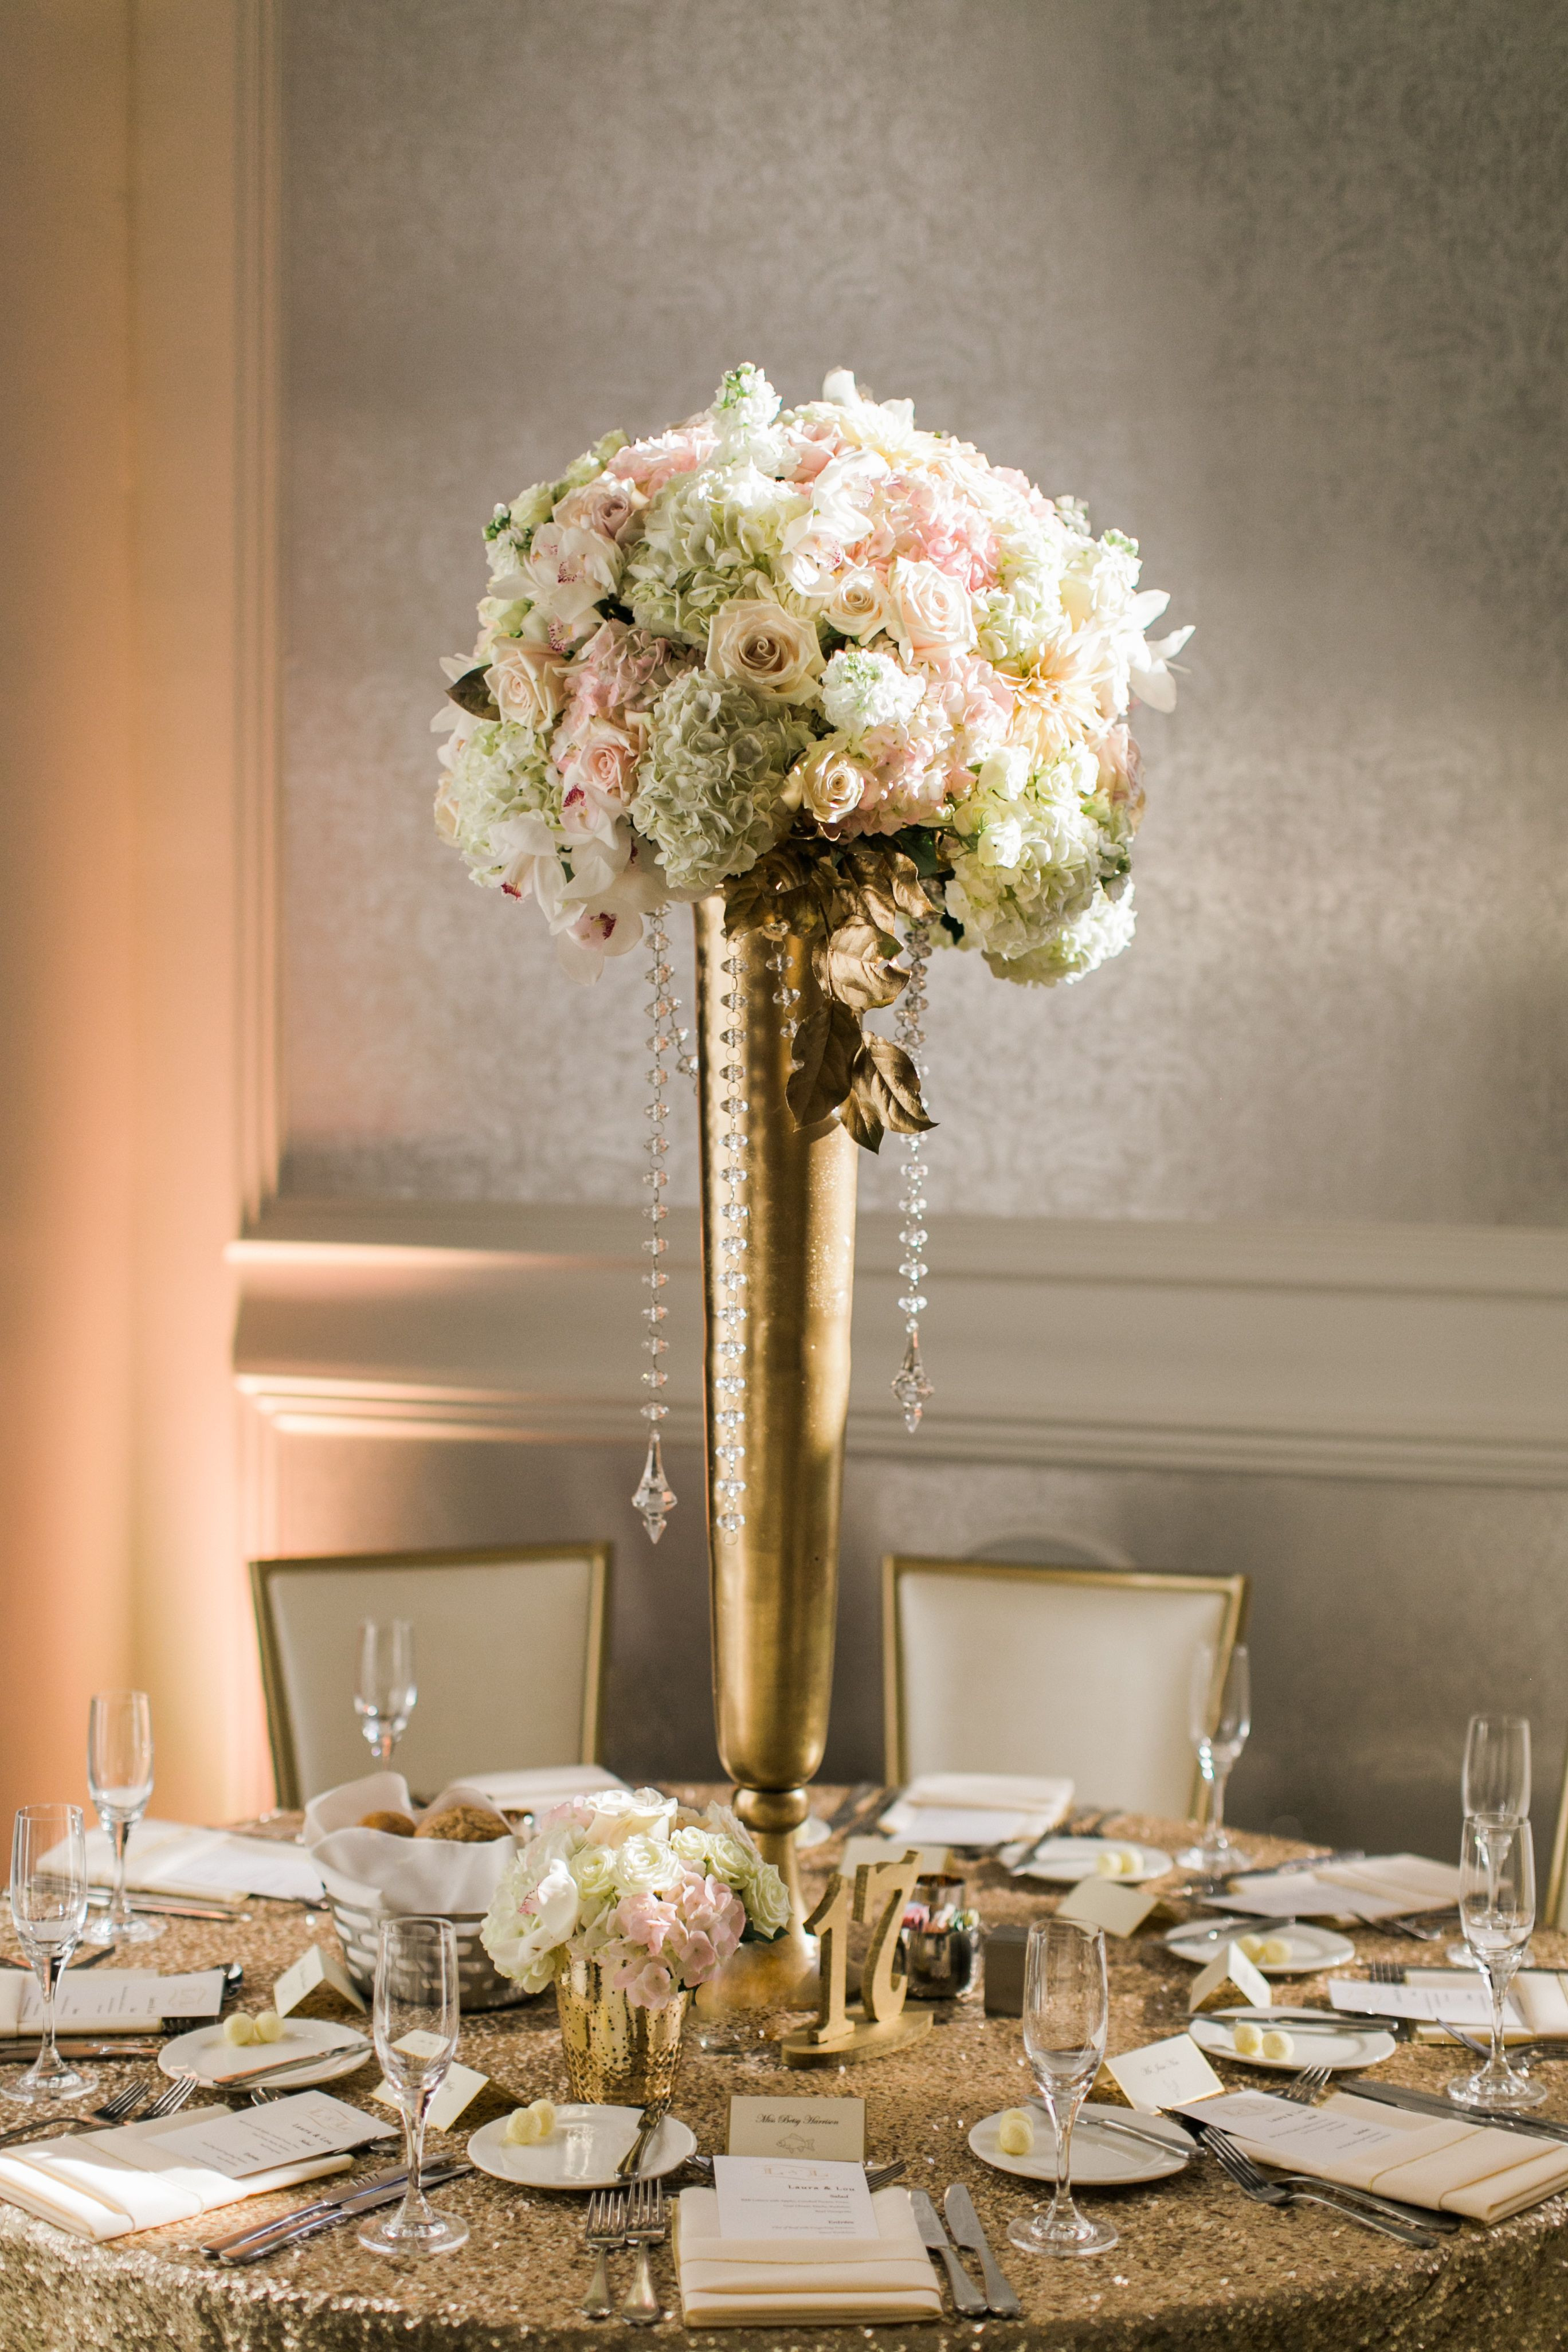 glitter vase wedding centerpiece of 18 inspirational tall gold vases for wedding bogekompresorturkiye com with regard to tall gold vase centerpiece bridal ideas pinterest scheme tall gold centerpieces 33 new tall